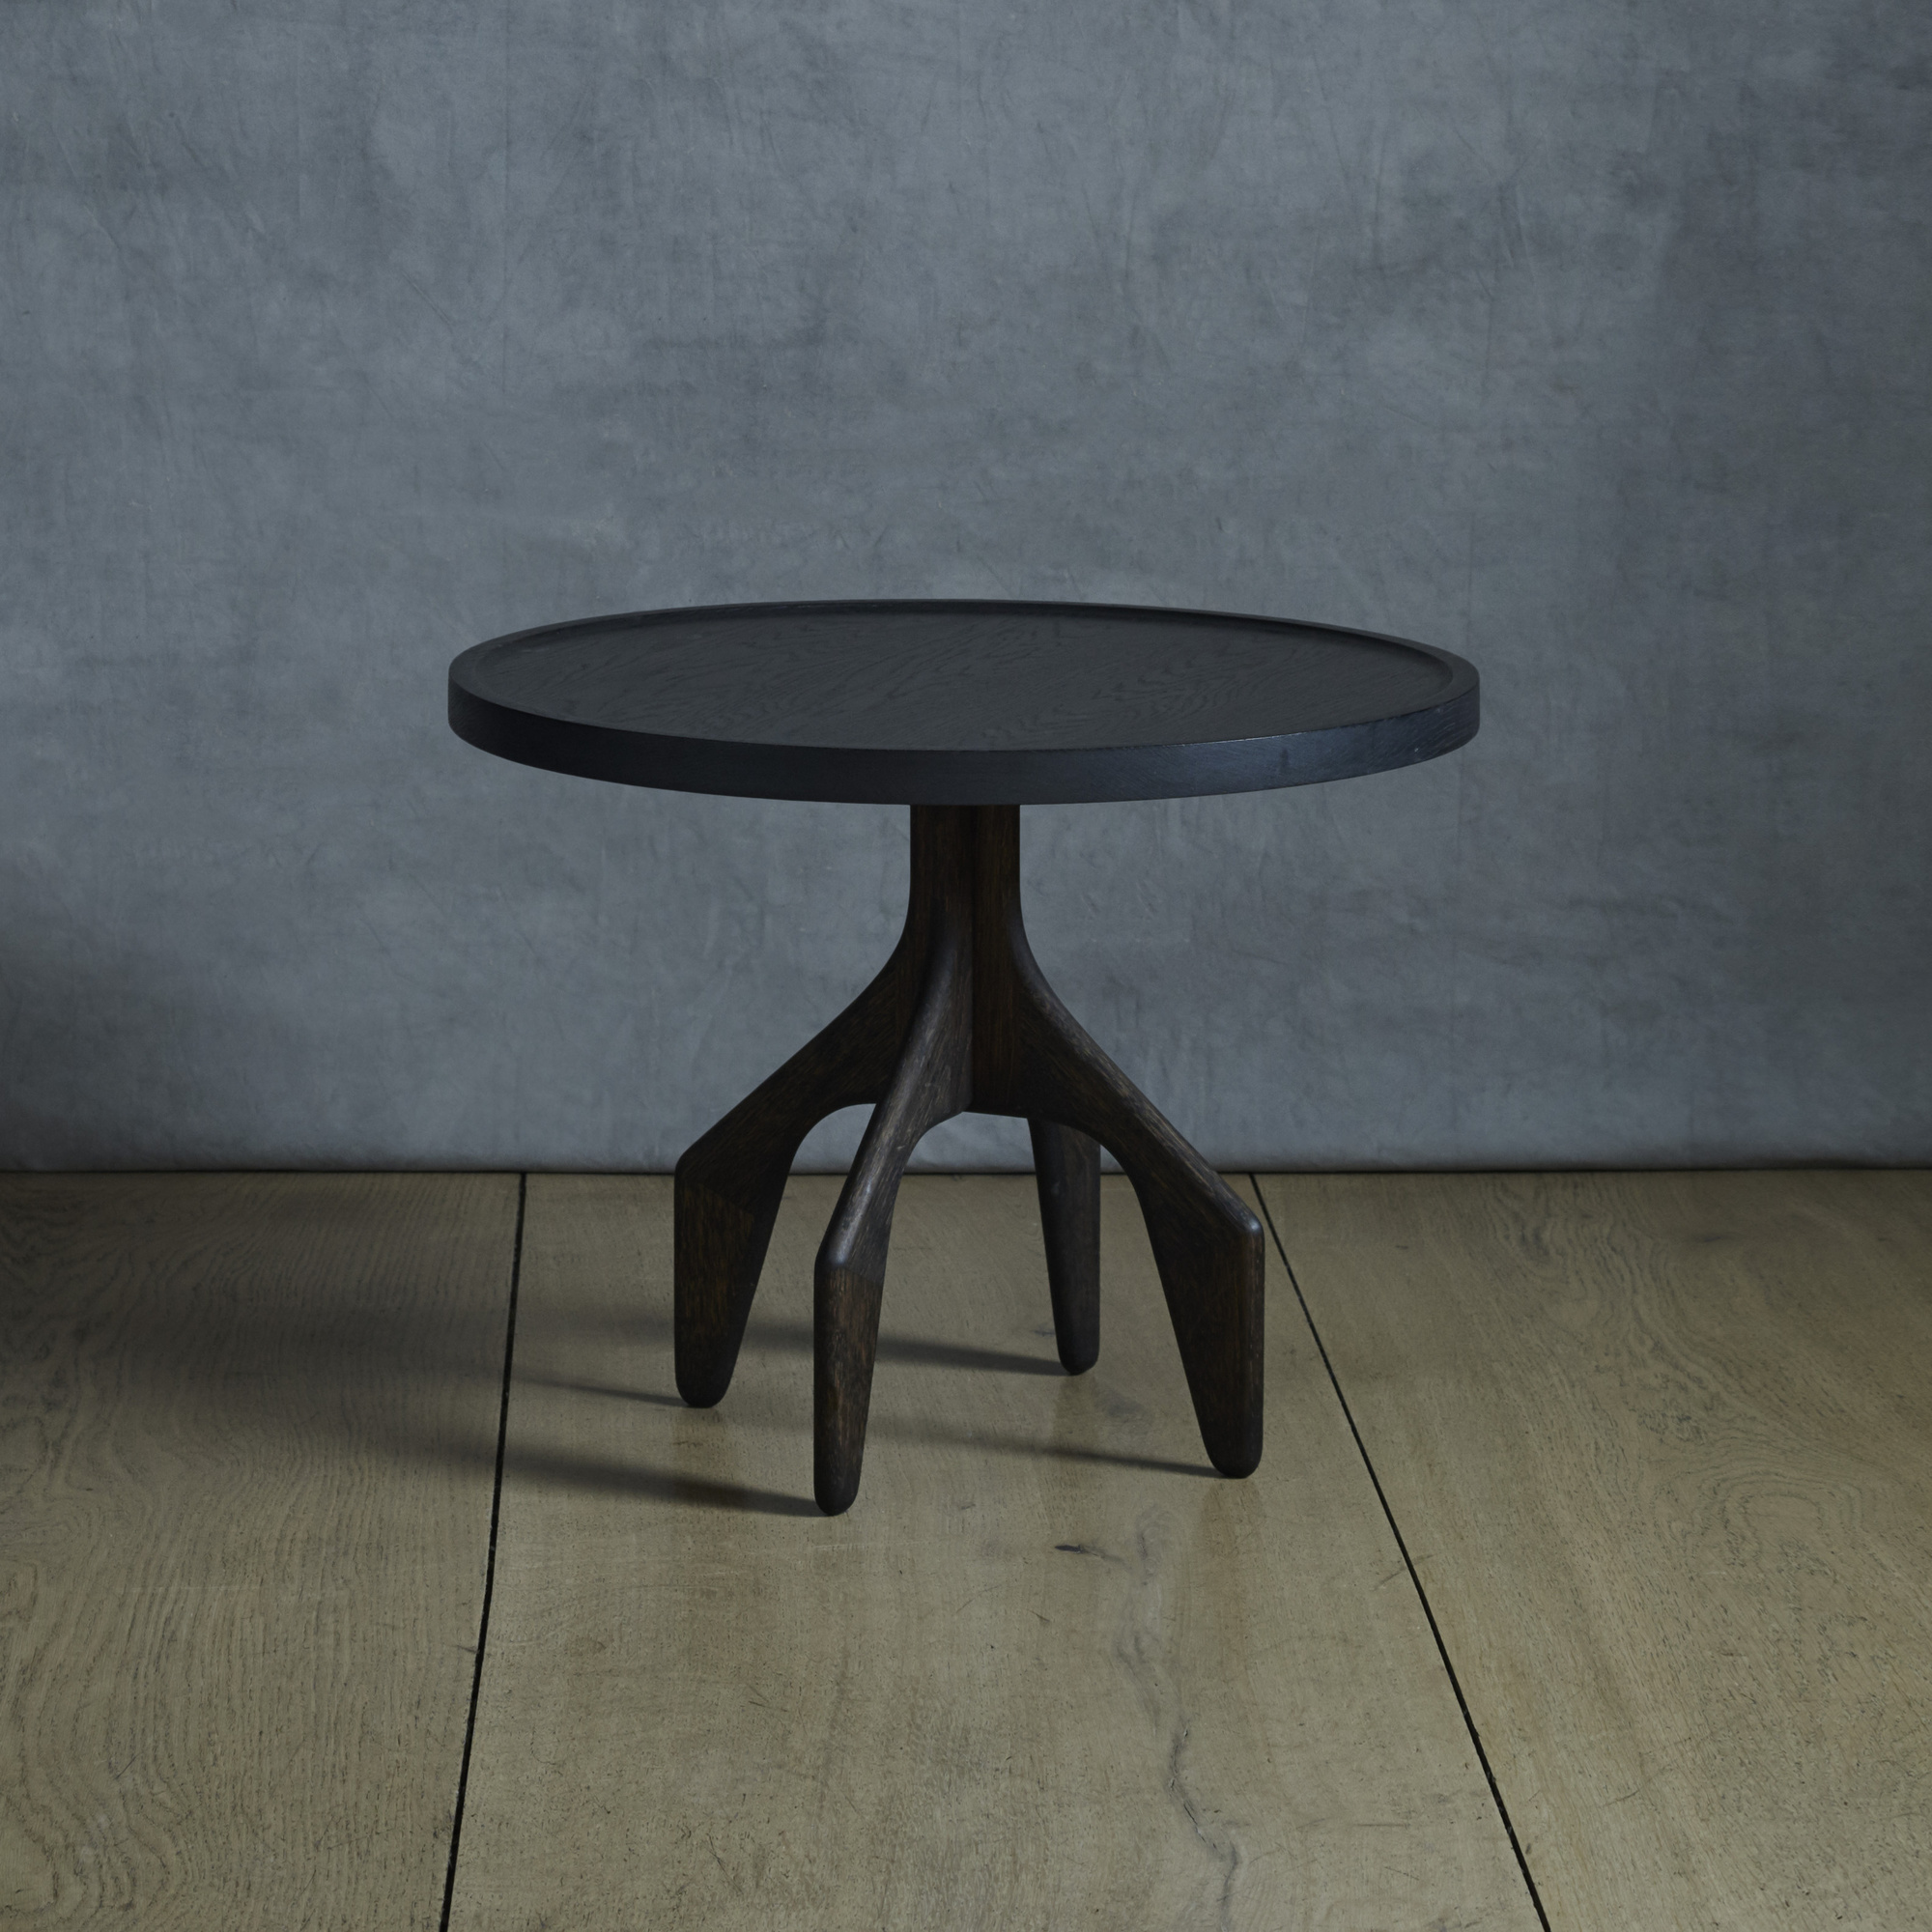 260 SPACE Copenhagen custom coffee table noma 2 November